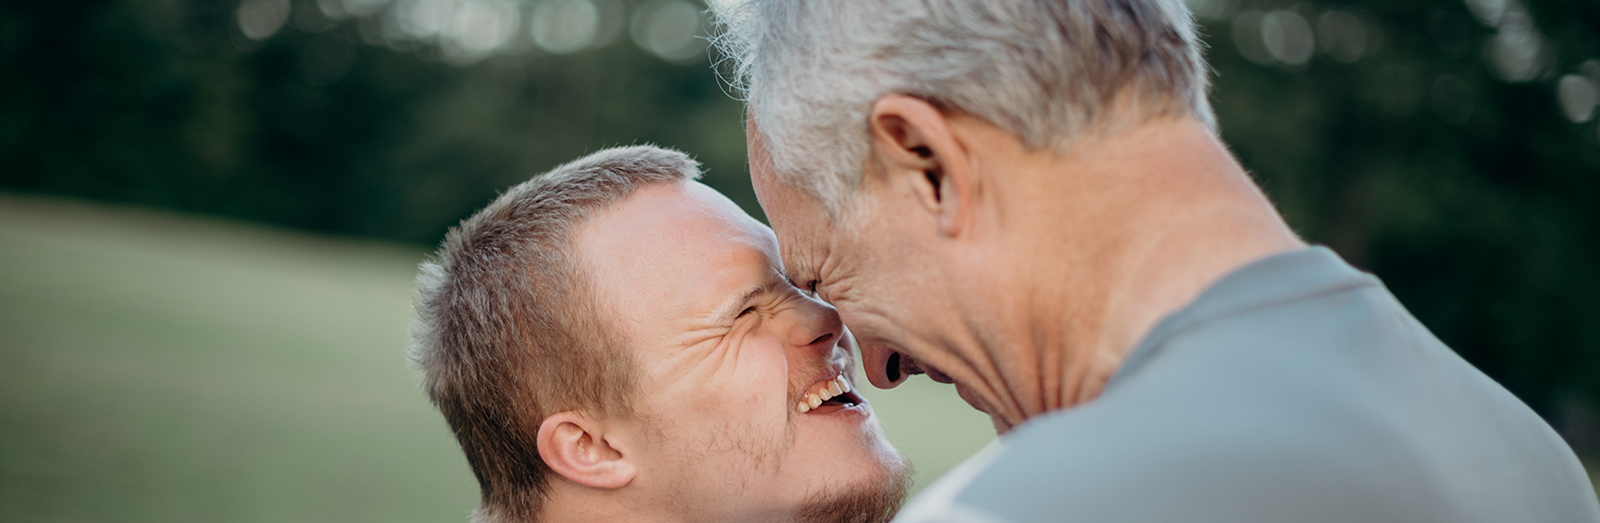 A young man with down syndrome and his father, smiling together